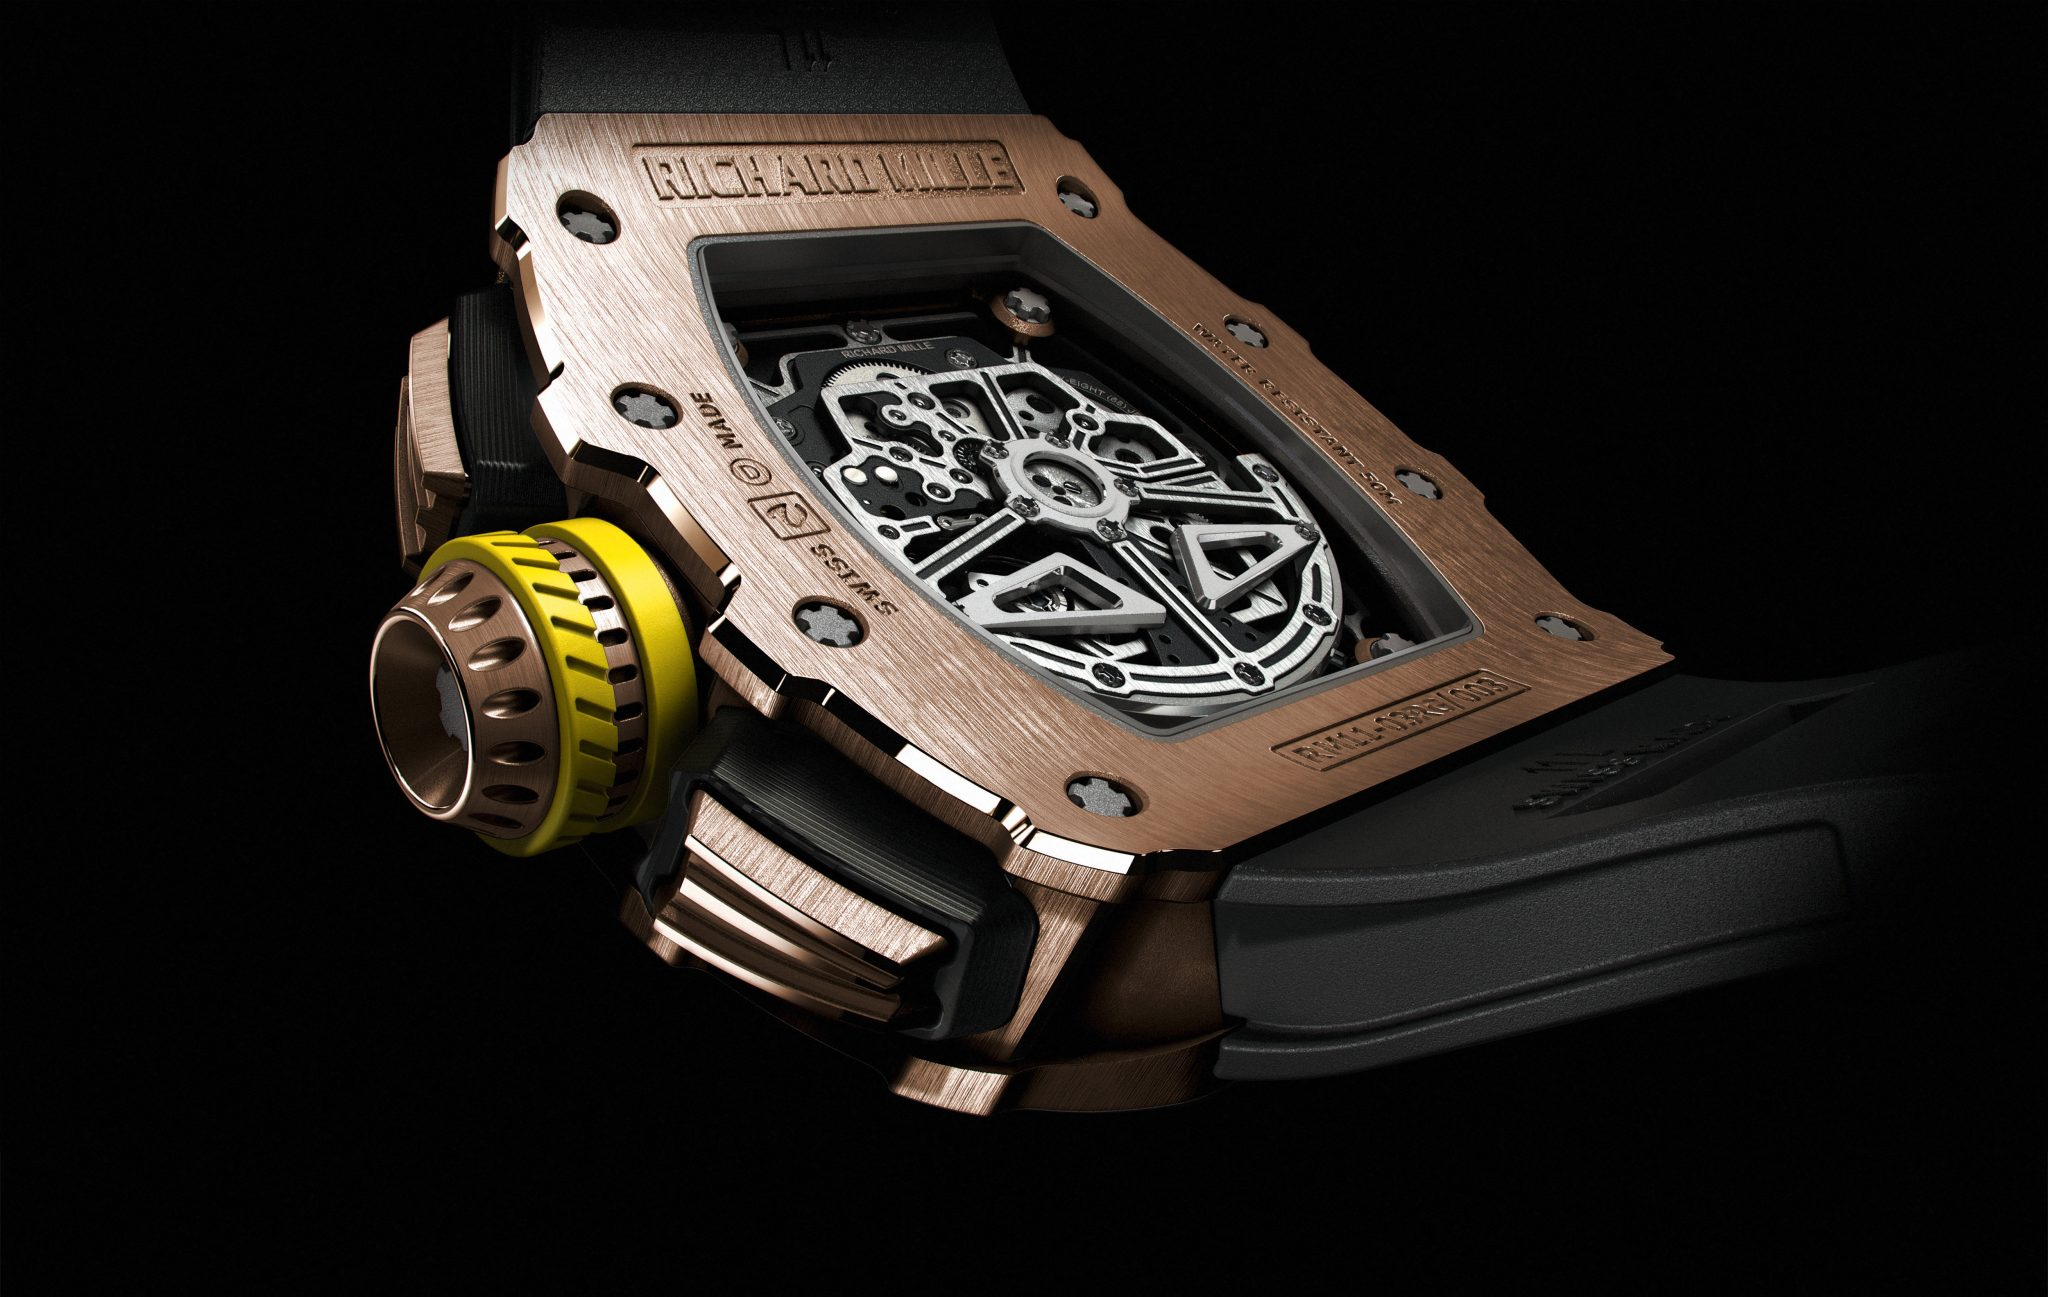 The Richard Mille RM11-03 rose gold mens watch chronograph